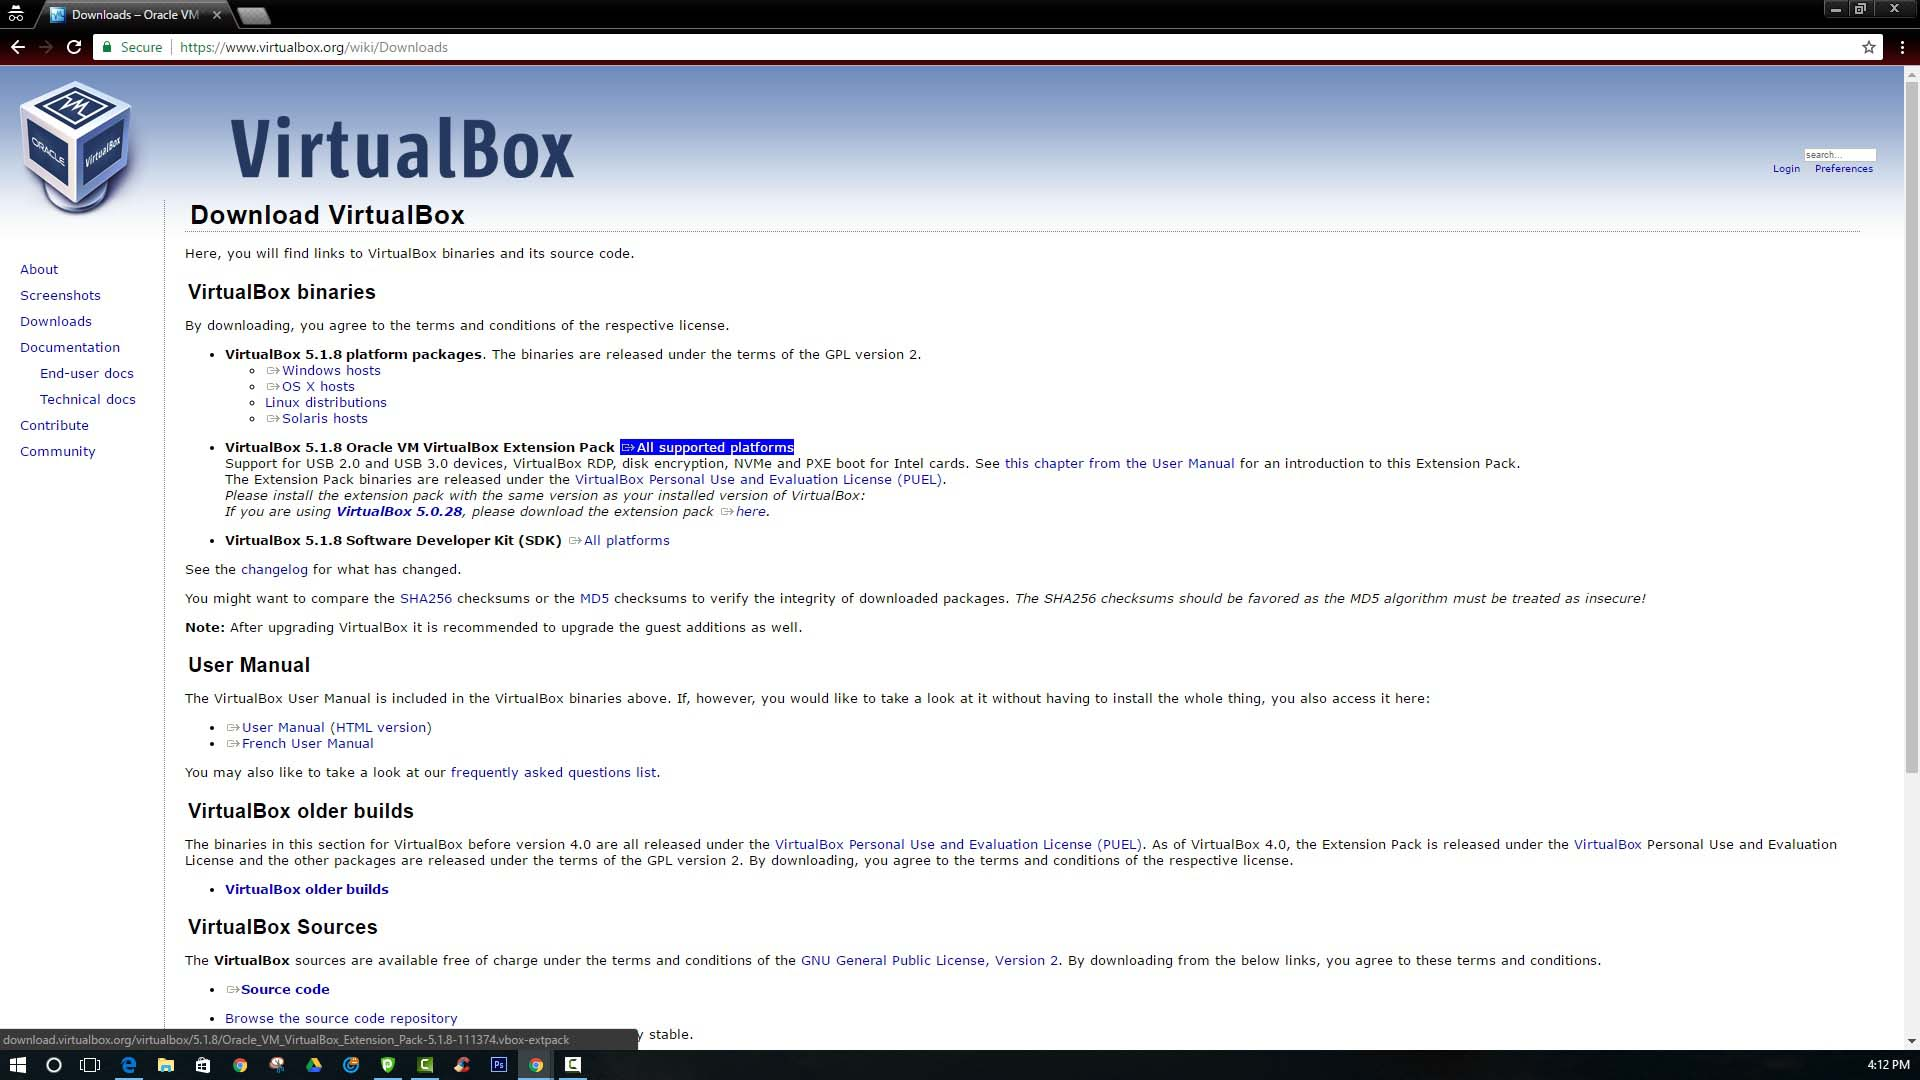 How to Install VirtualBox Extension Pack-Downloading File